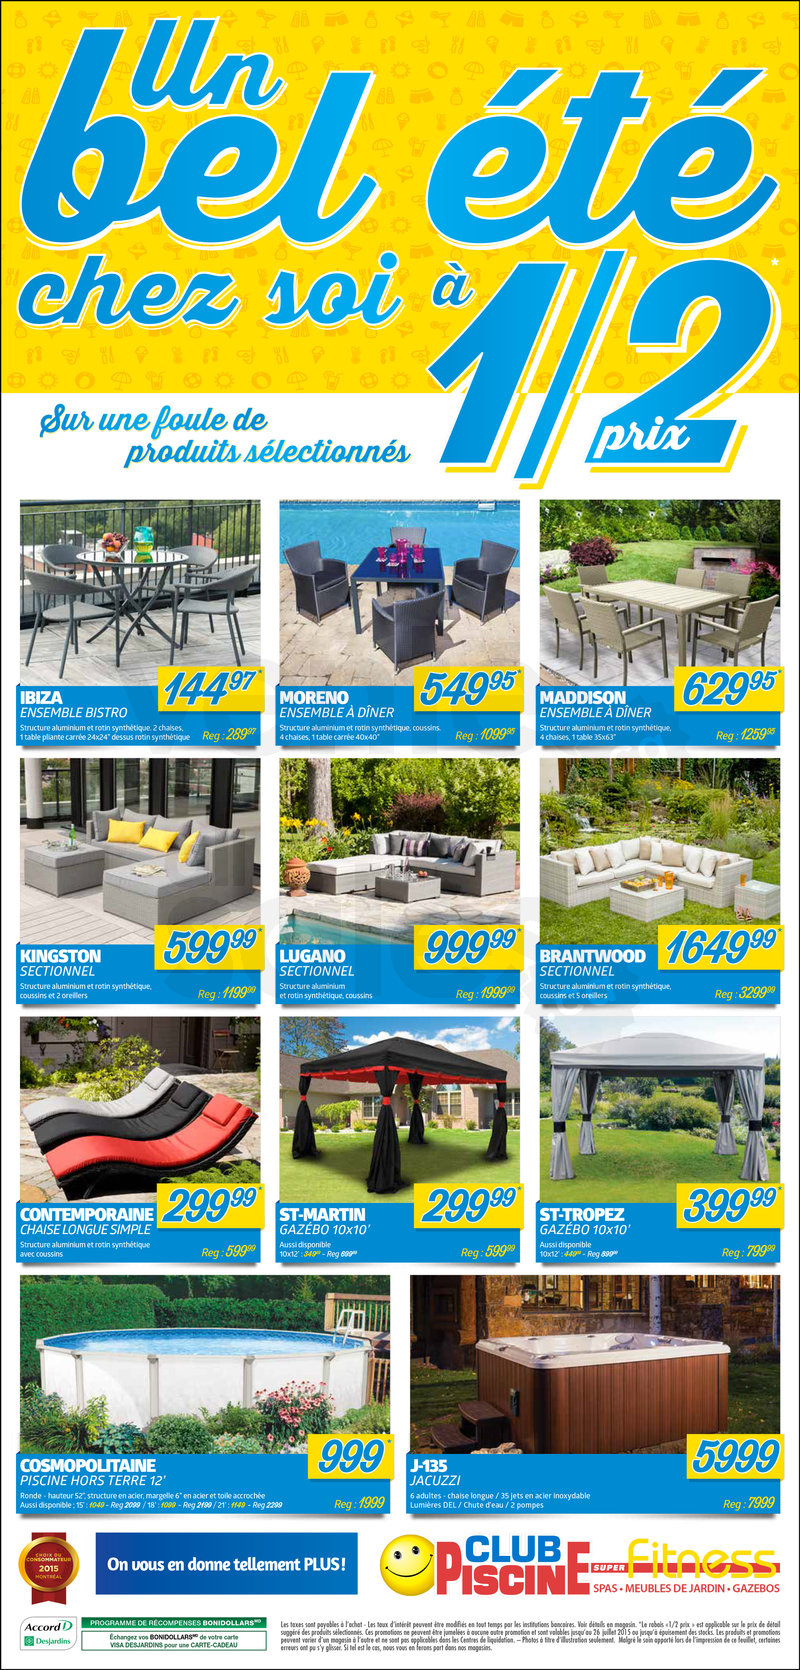 Club piscine 50 produits s lectionn s for Club piscine ca